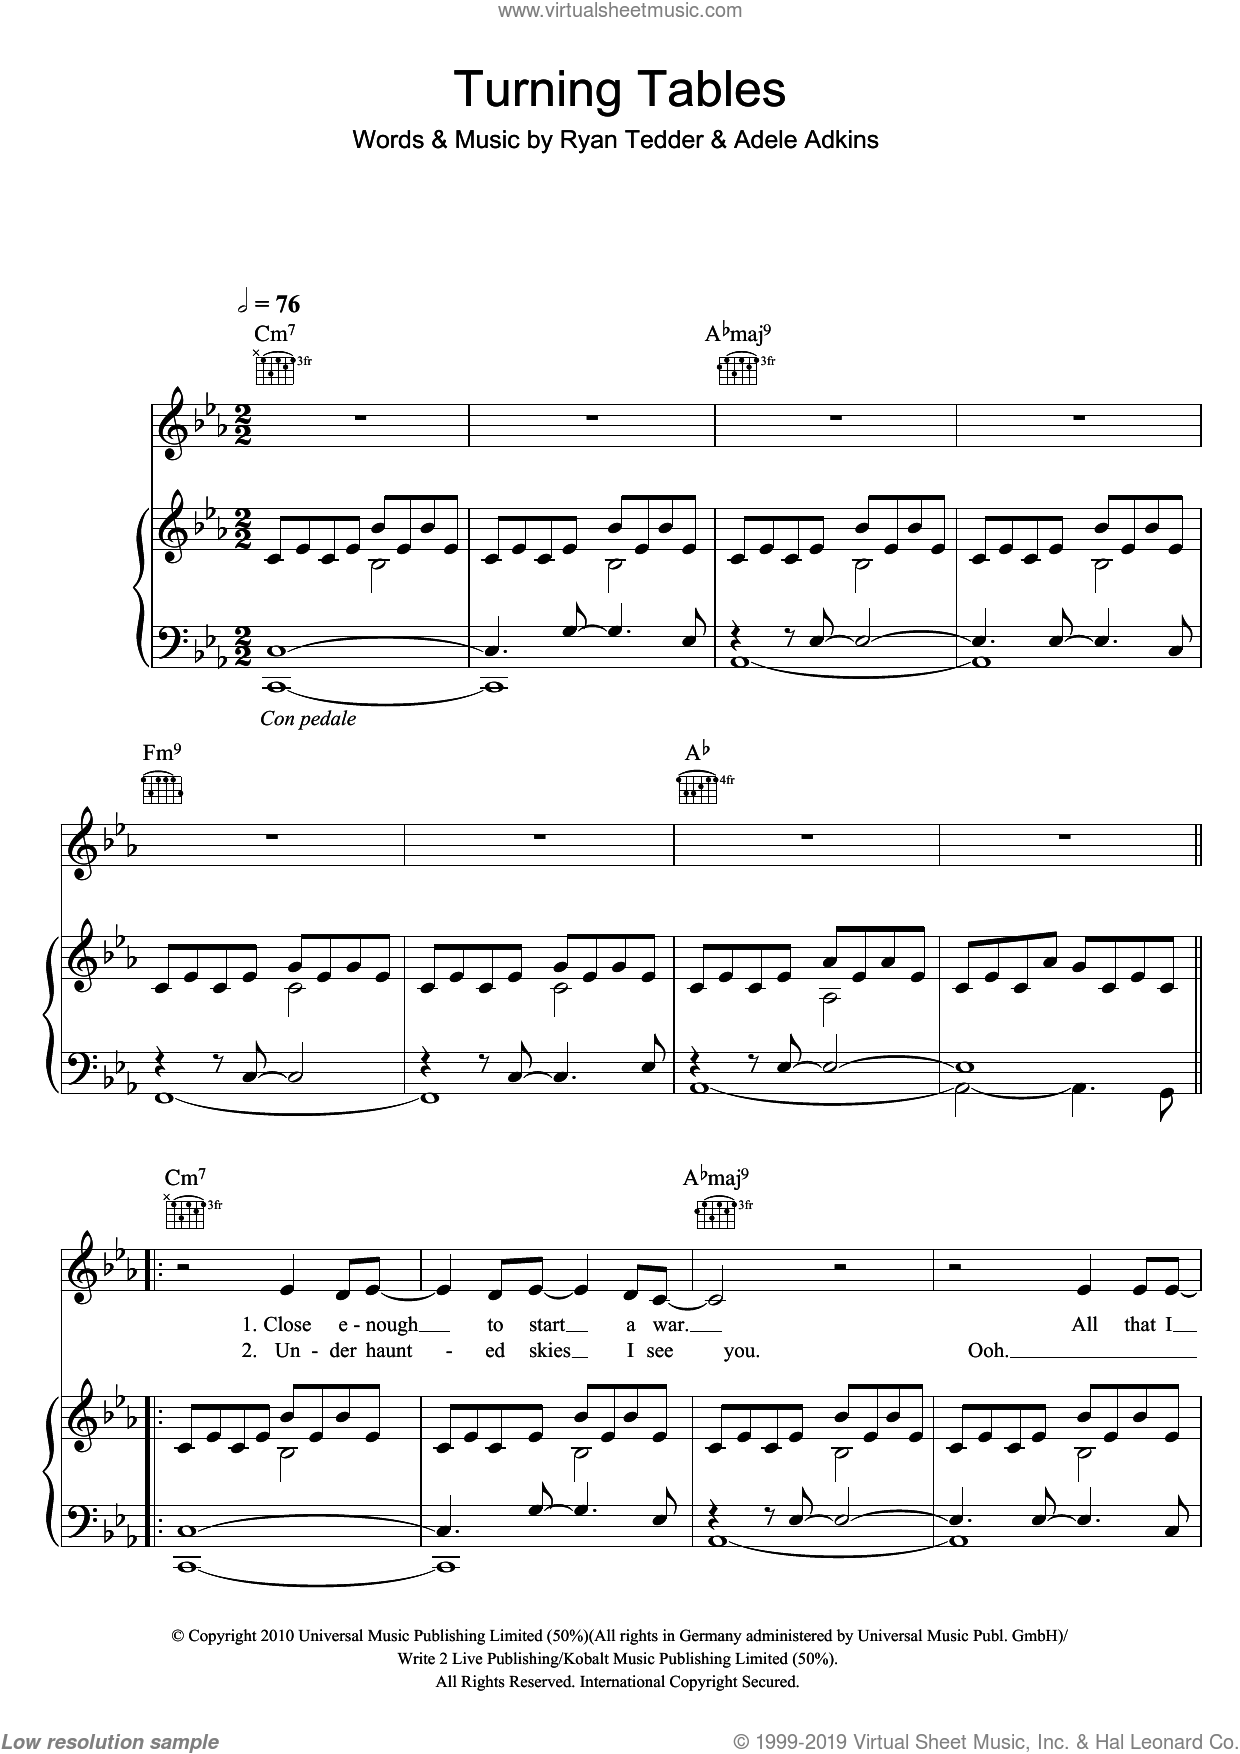 Turning Tables sheet music for voice, piano or guitar by Adele, Adele Adkins and Ryan Tedder, intermediate skill level